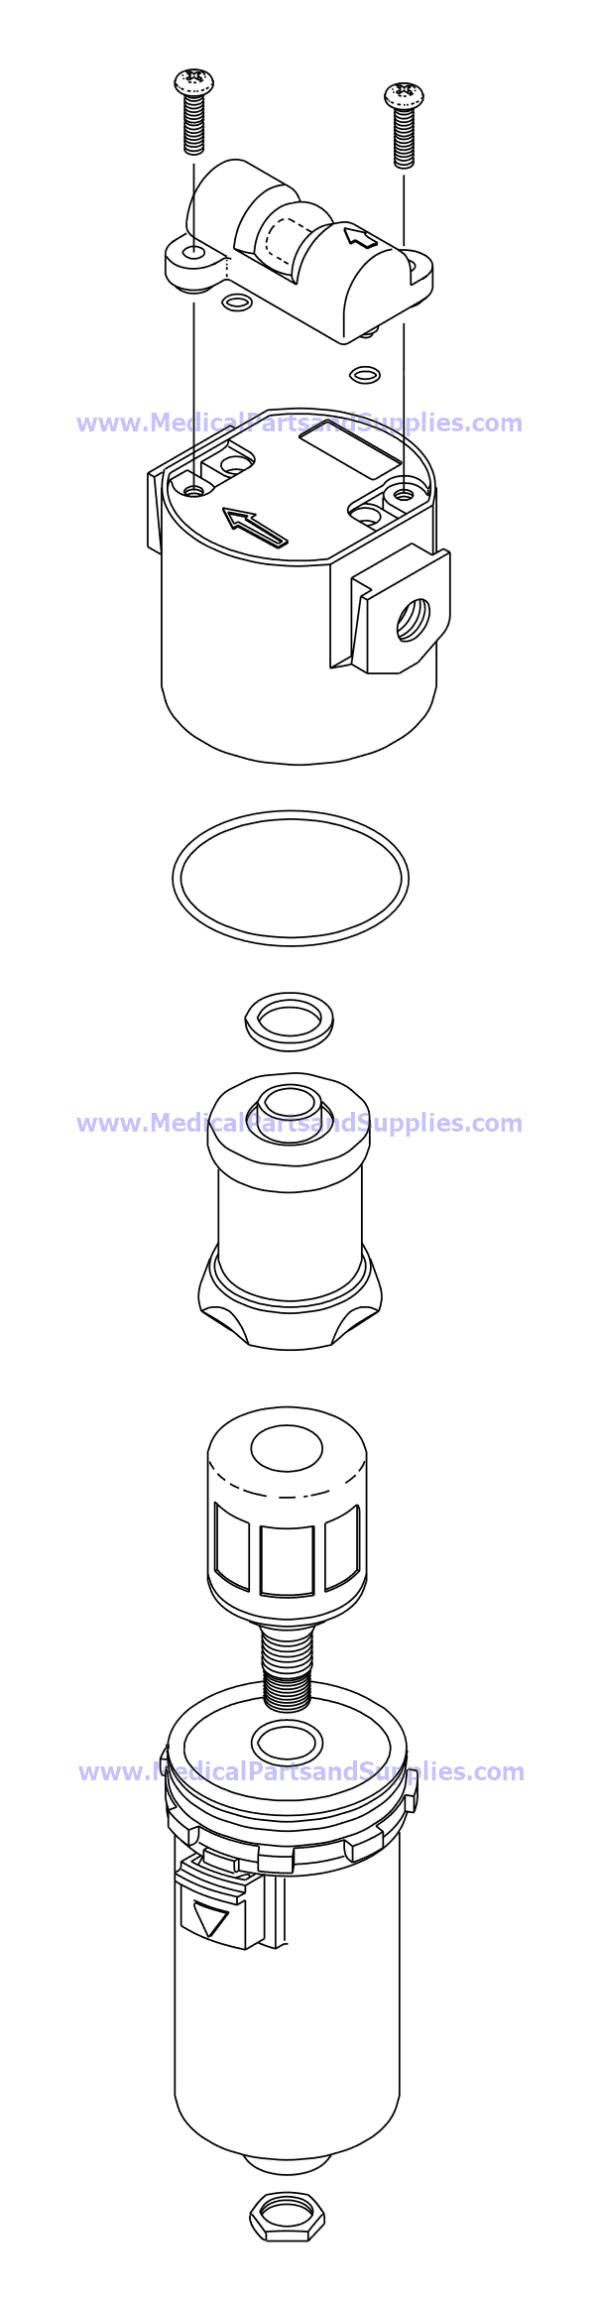 Coalescing Filter Assembly, Part CMA021 (OEM Parts ACA70305, 77005010, 62985200, and M16-03-FMO)